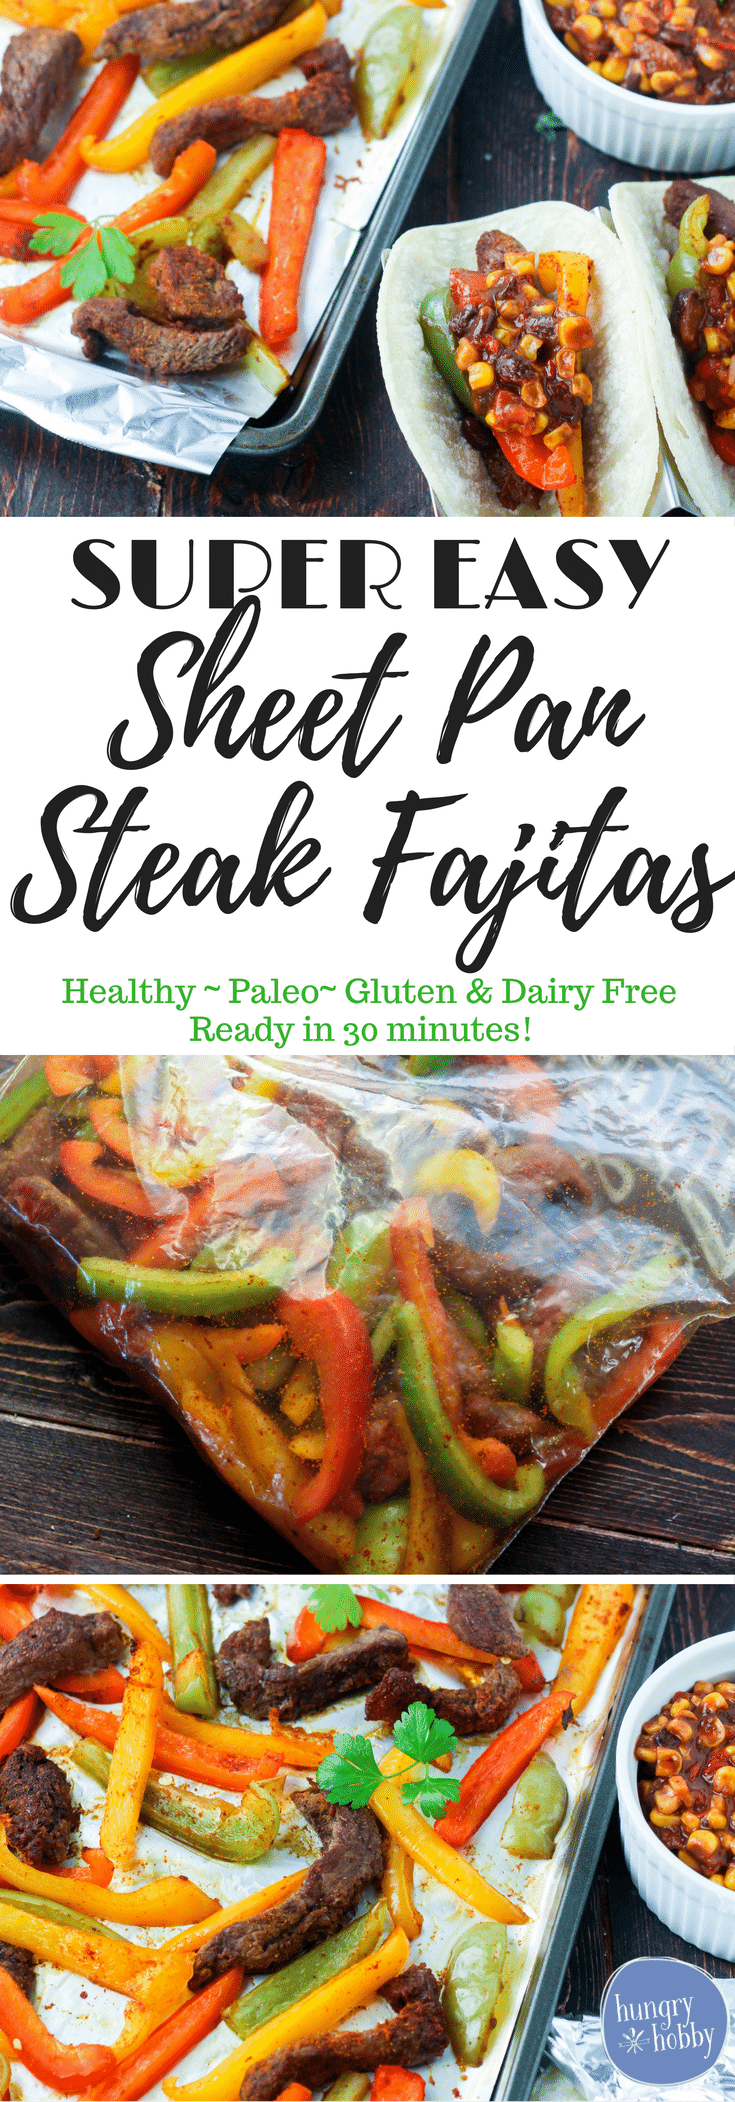 Super easy sheet pan steak fajitas are a quick healthy one dish meal made in no time with little clean up!  Paleo, Gluten and Dairy Free!